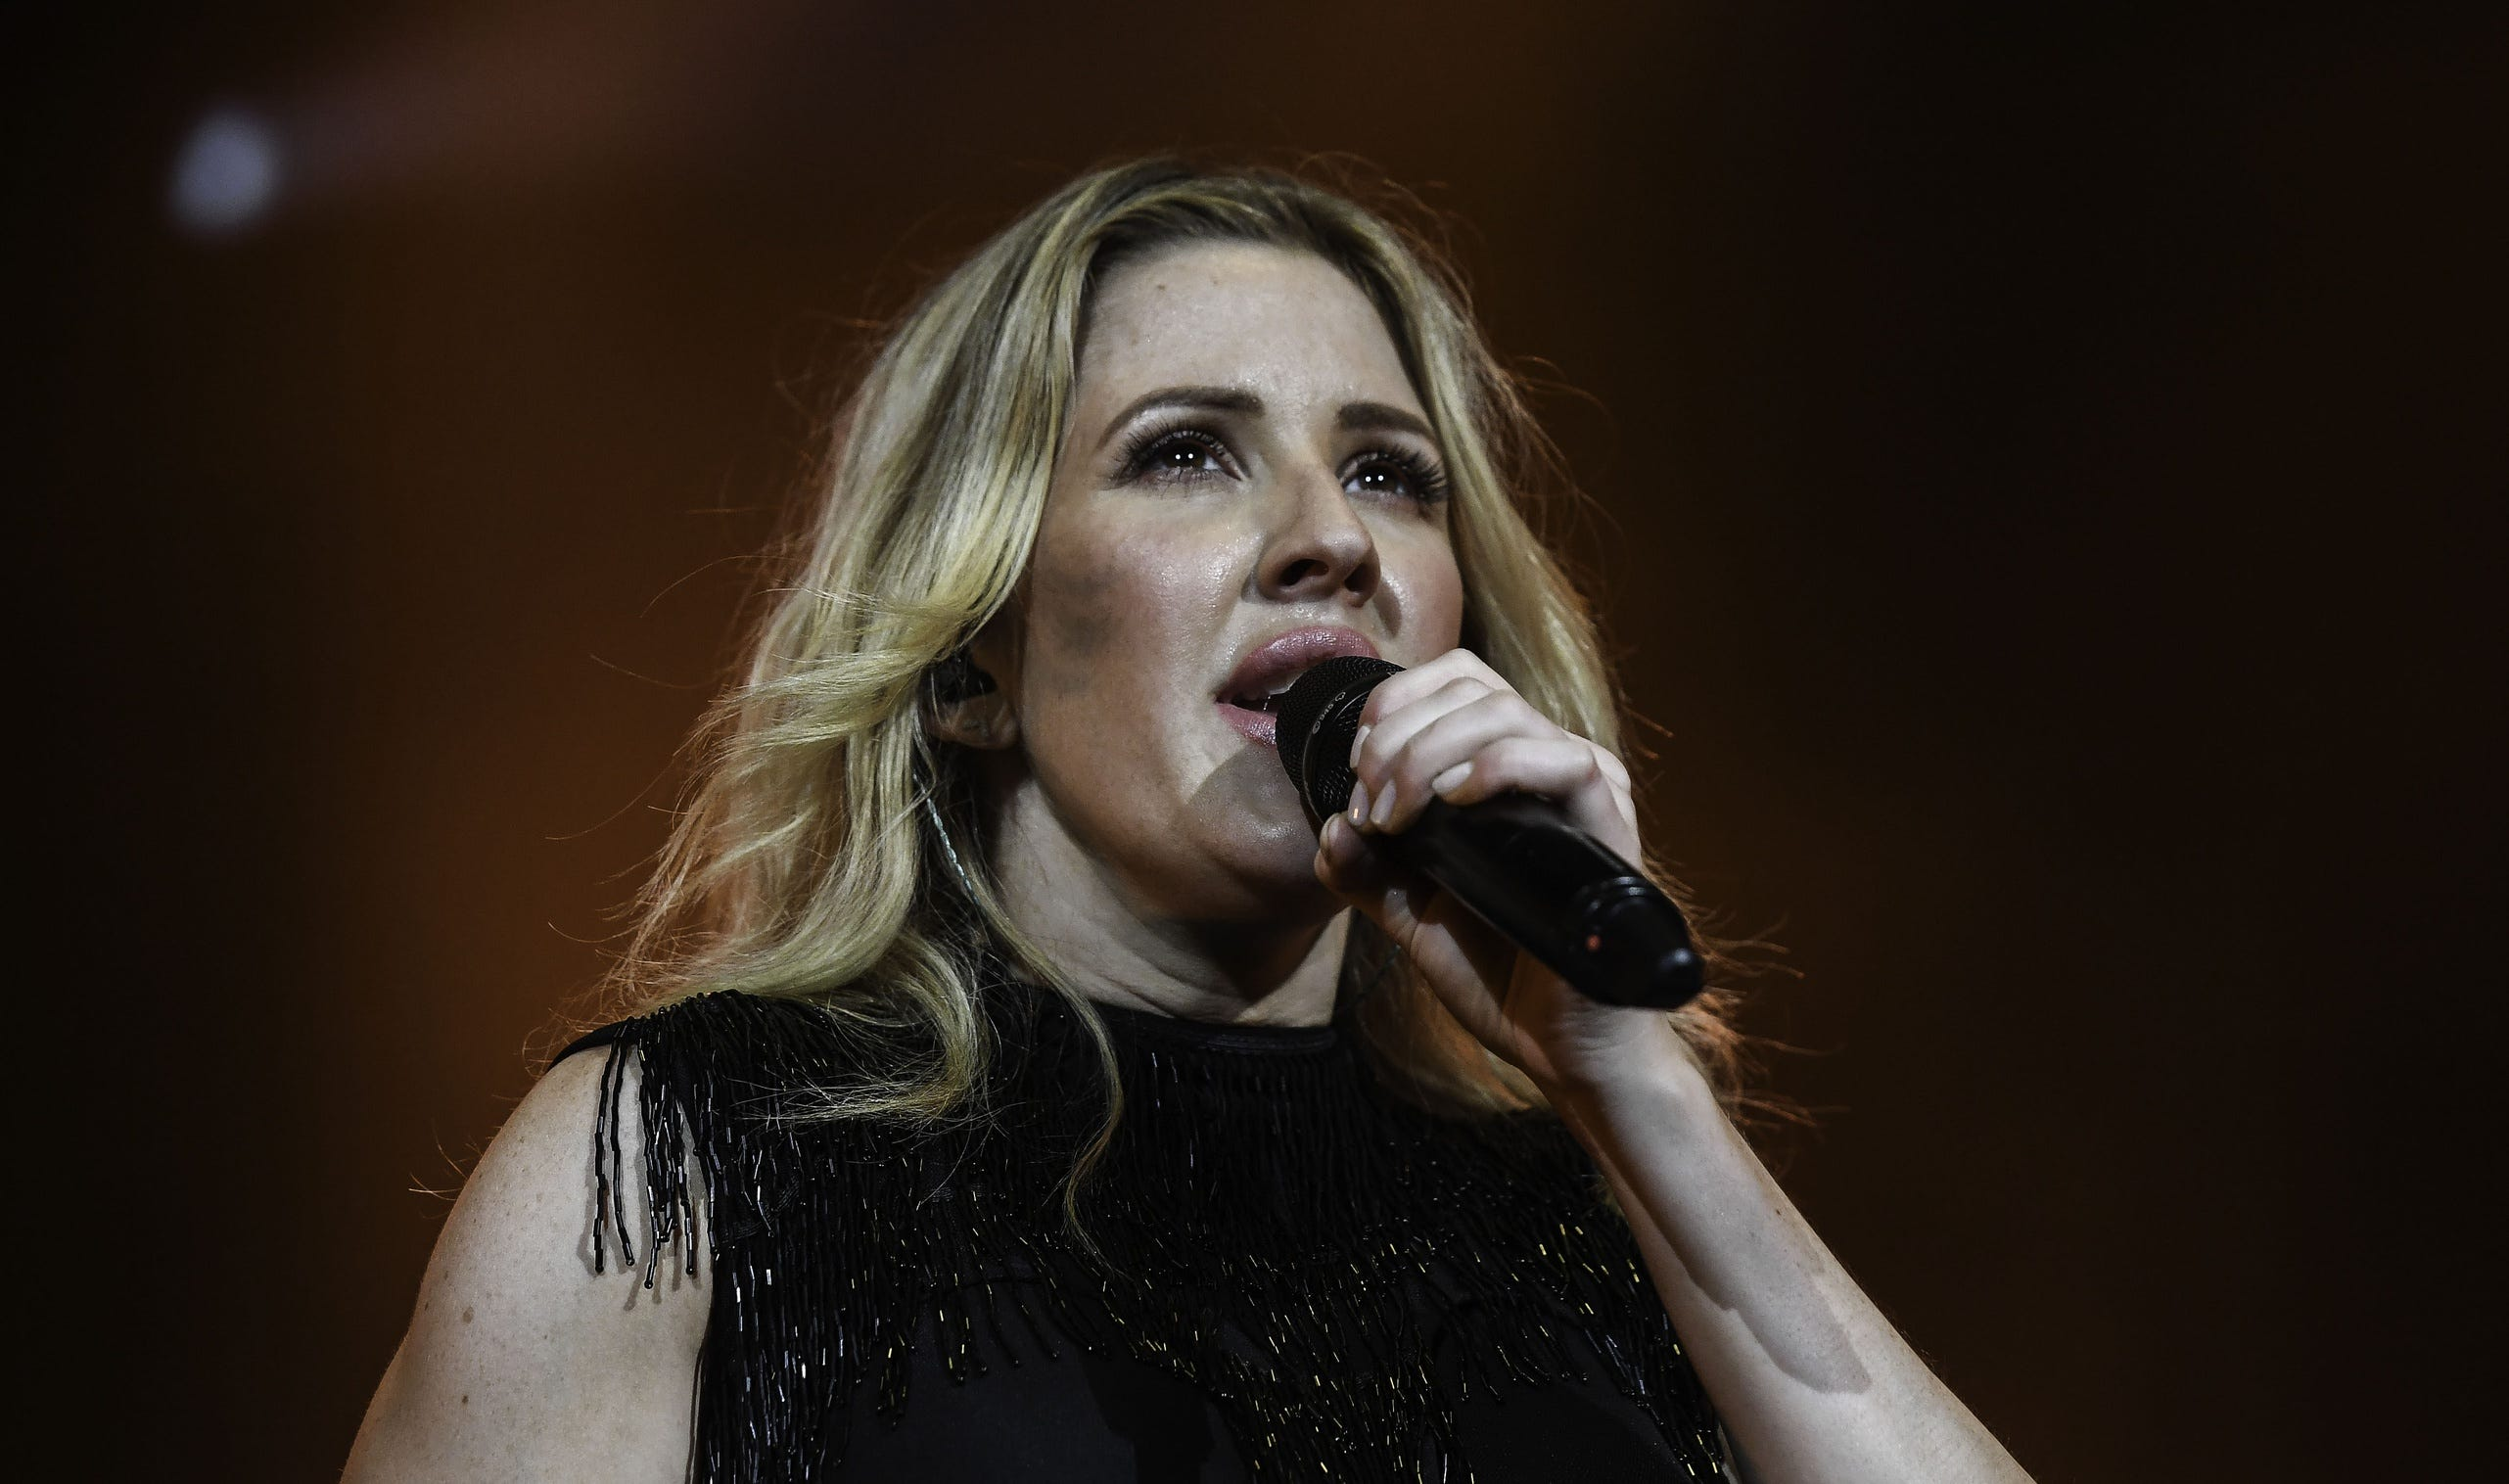 Halftime Show Thanksgiving 2020.Ellie Goulding To Perform At Cowboys Thanksgiving Game